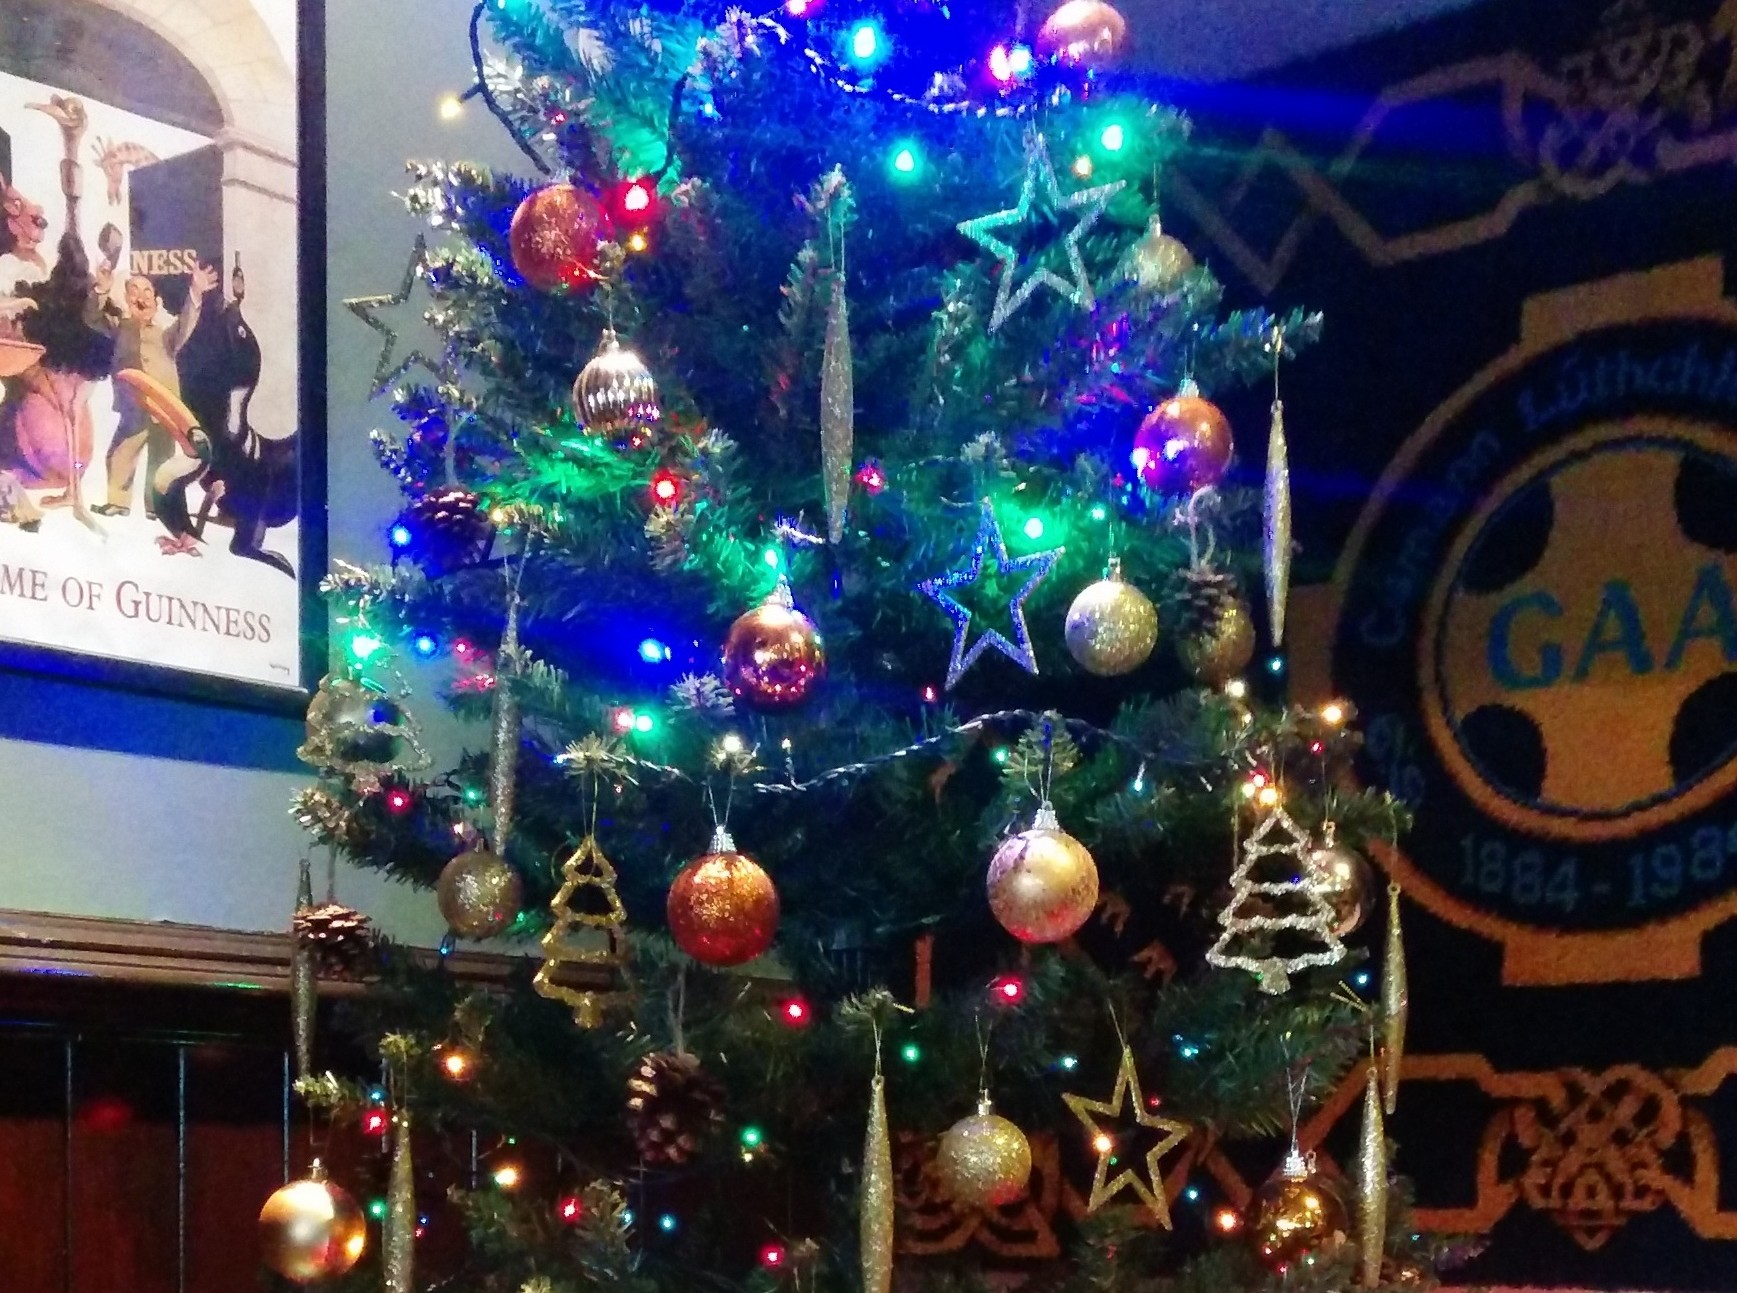 Christmas tree in venue